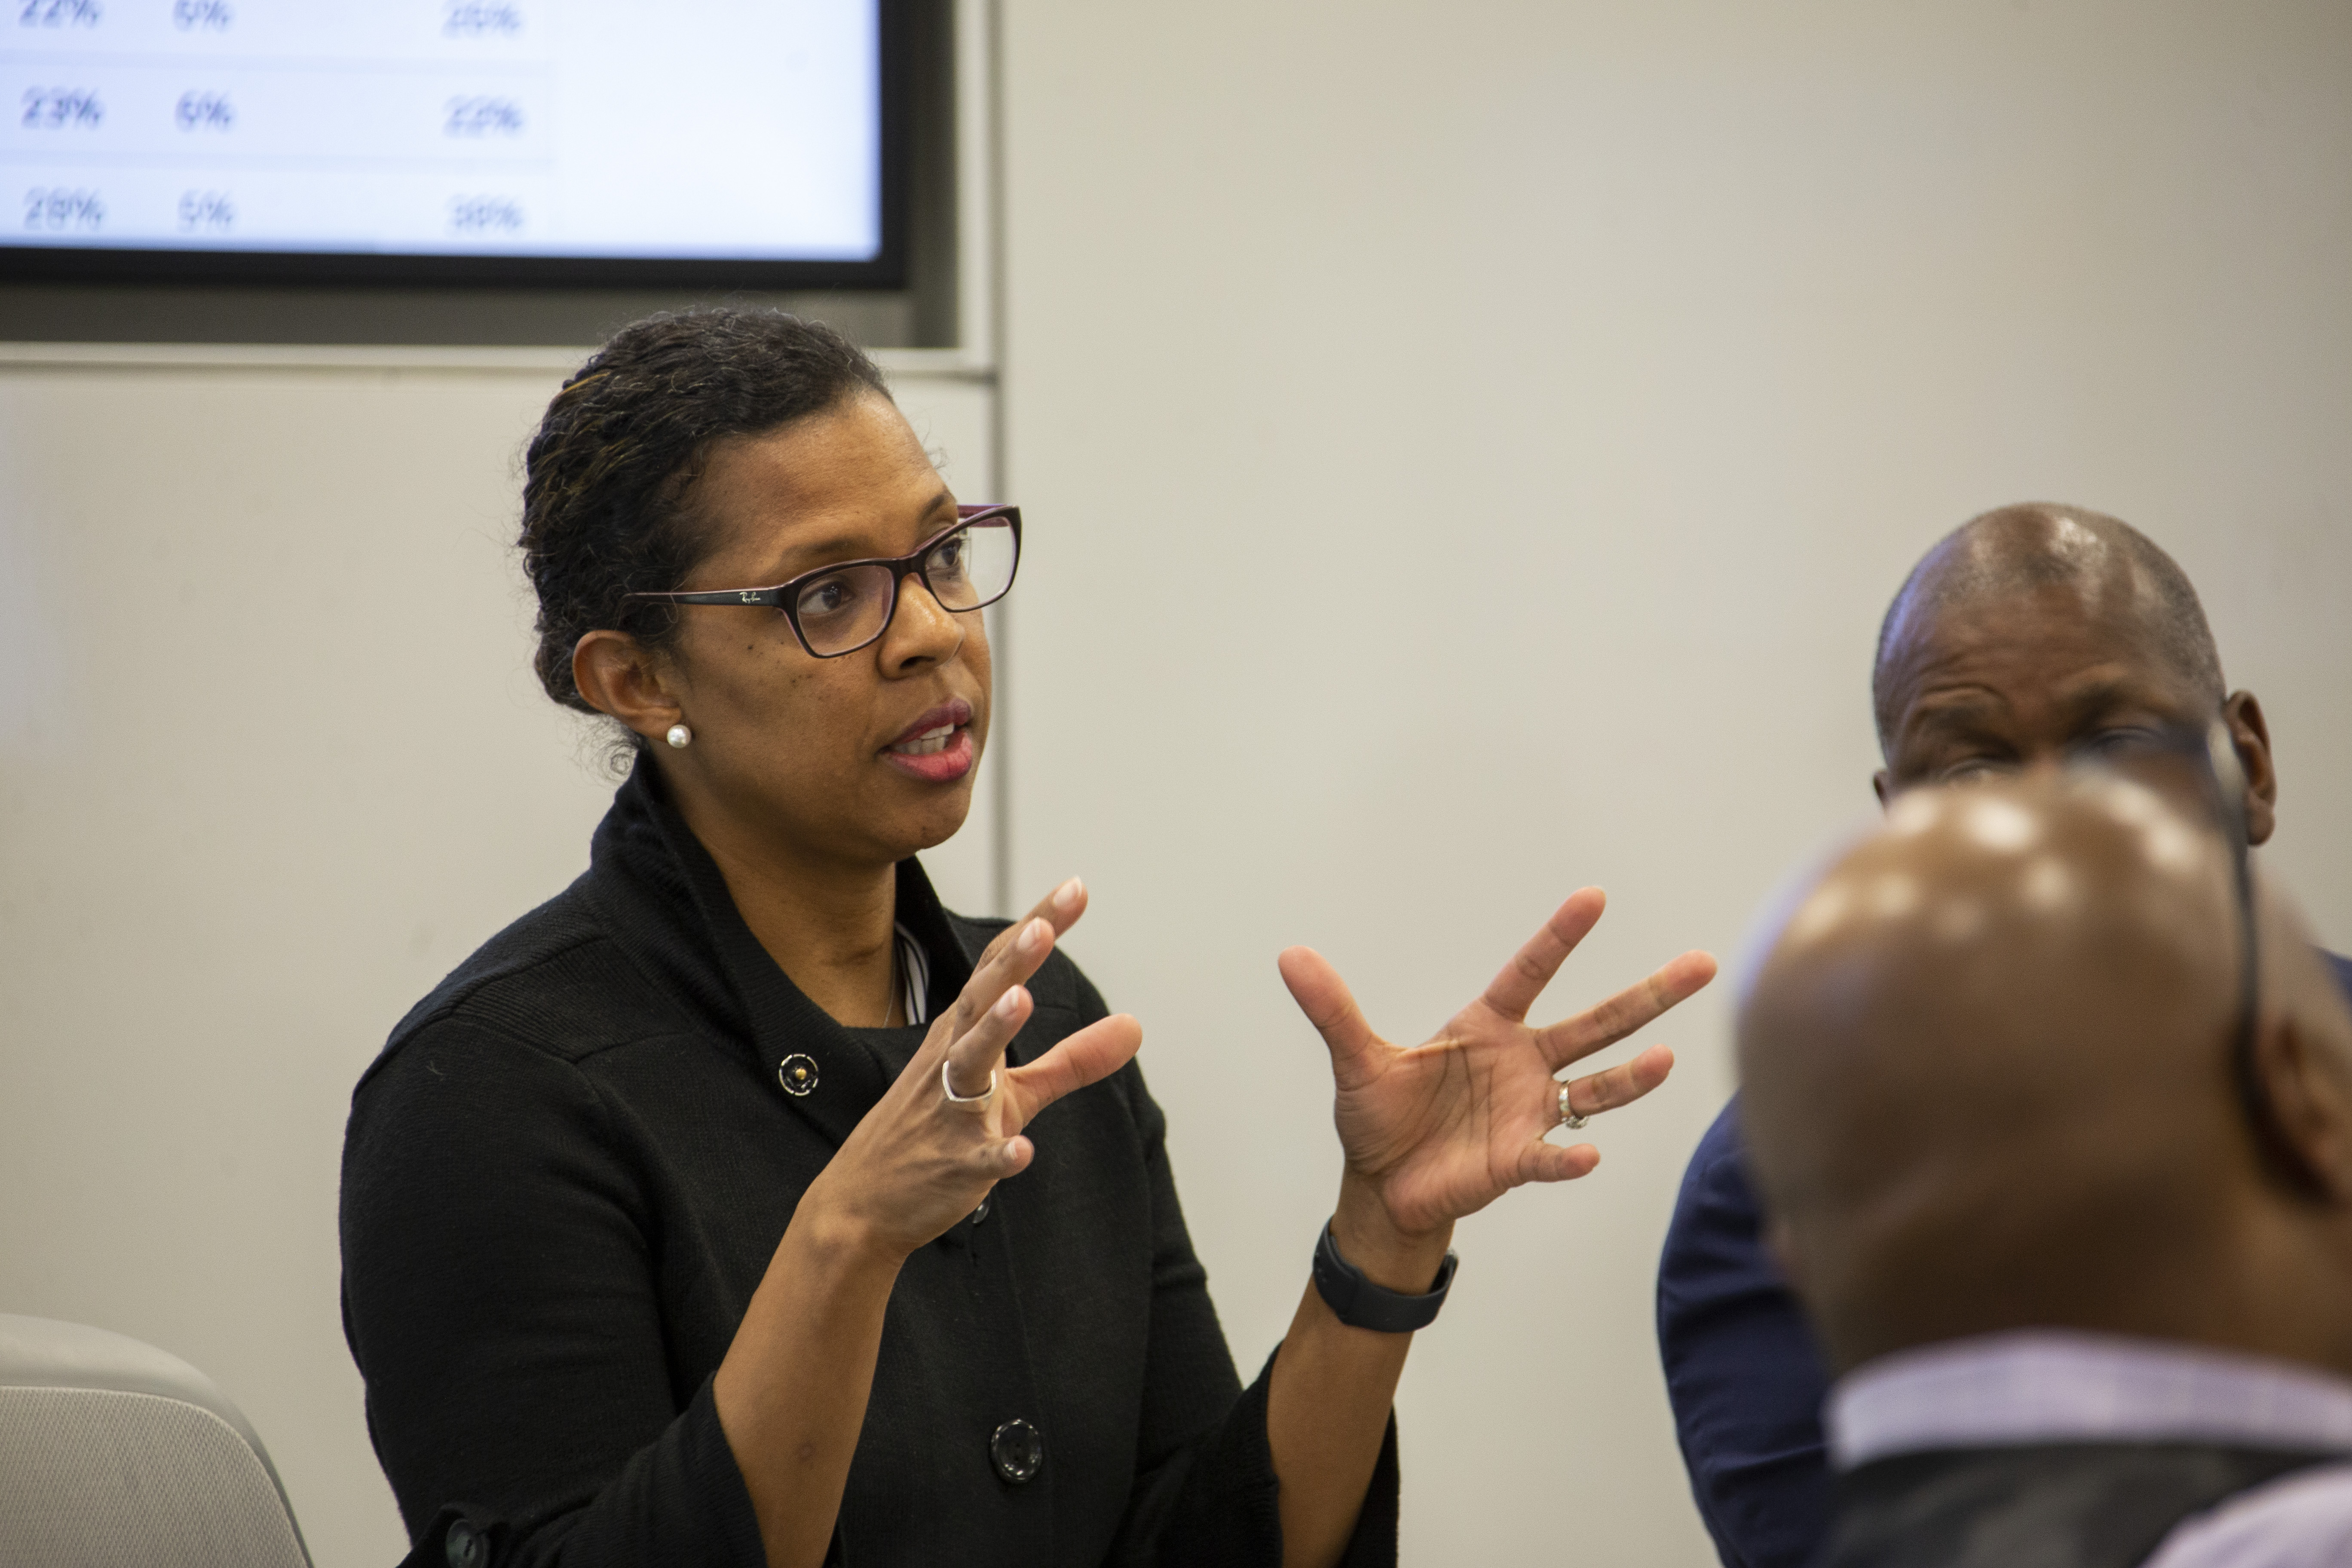 WWT hosted the National Minority Supplier Development Council in January 2020.